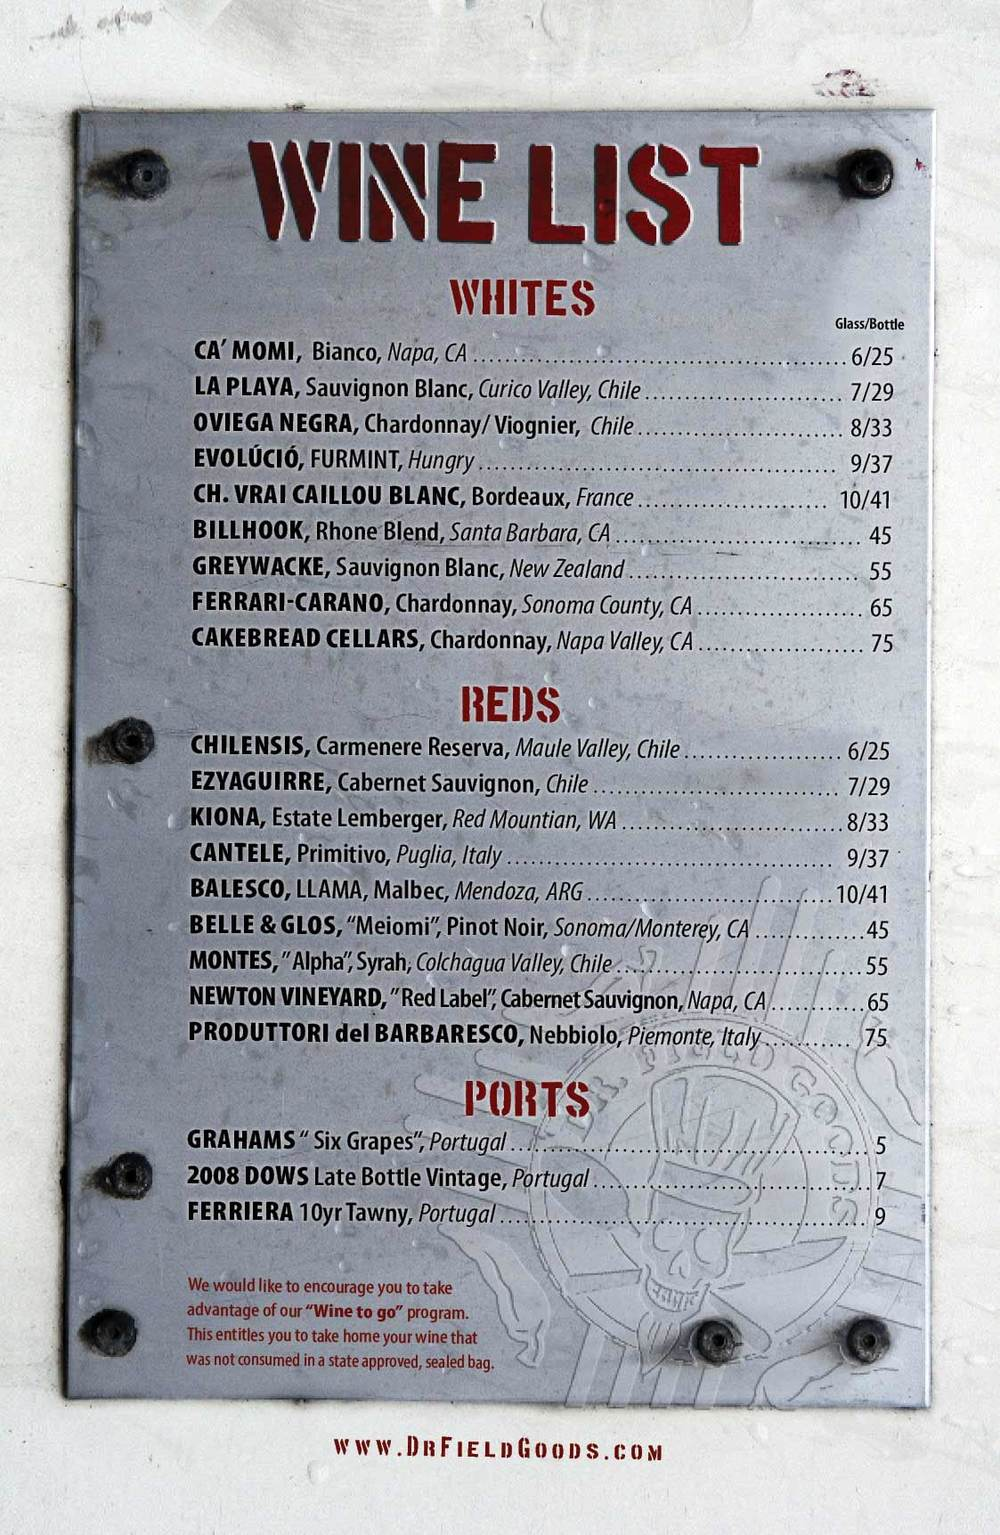 DFG_Wine-Menu_Red-Zipper-Design.jpg